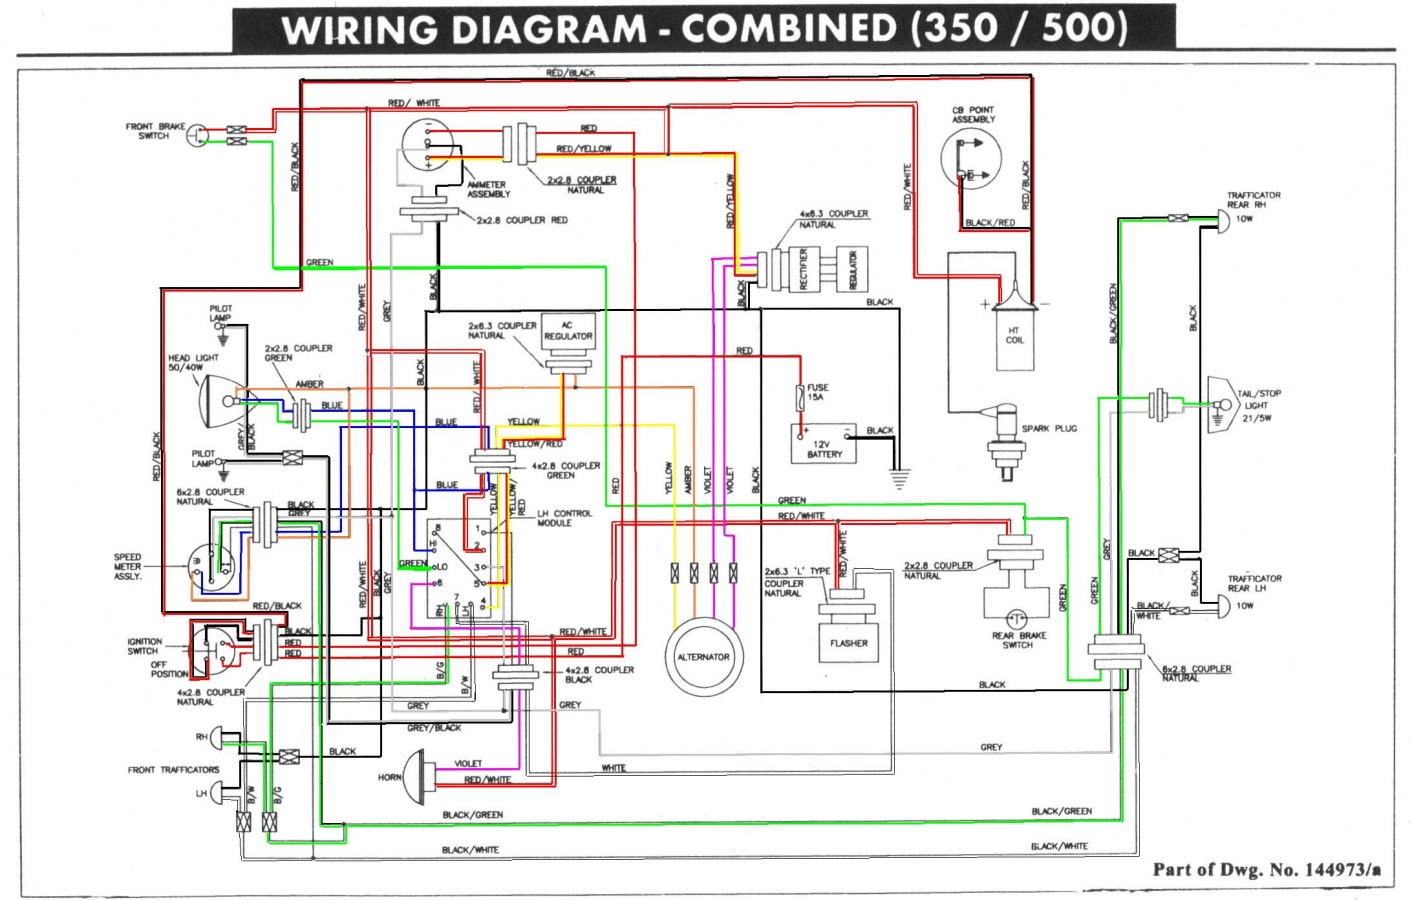 diagrams 875667 royal enfield 350 wiring diagram royal enfield royal enfield wiring diagrams at gsmx.co